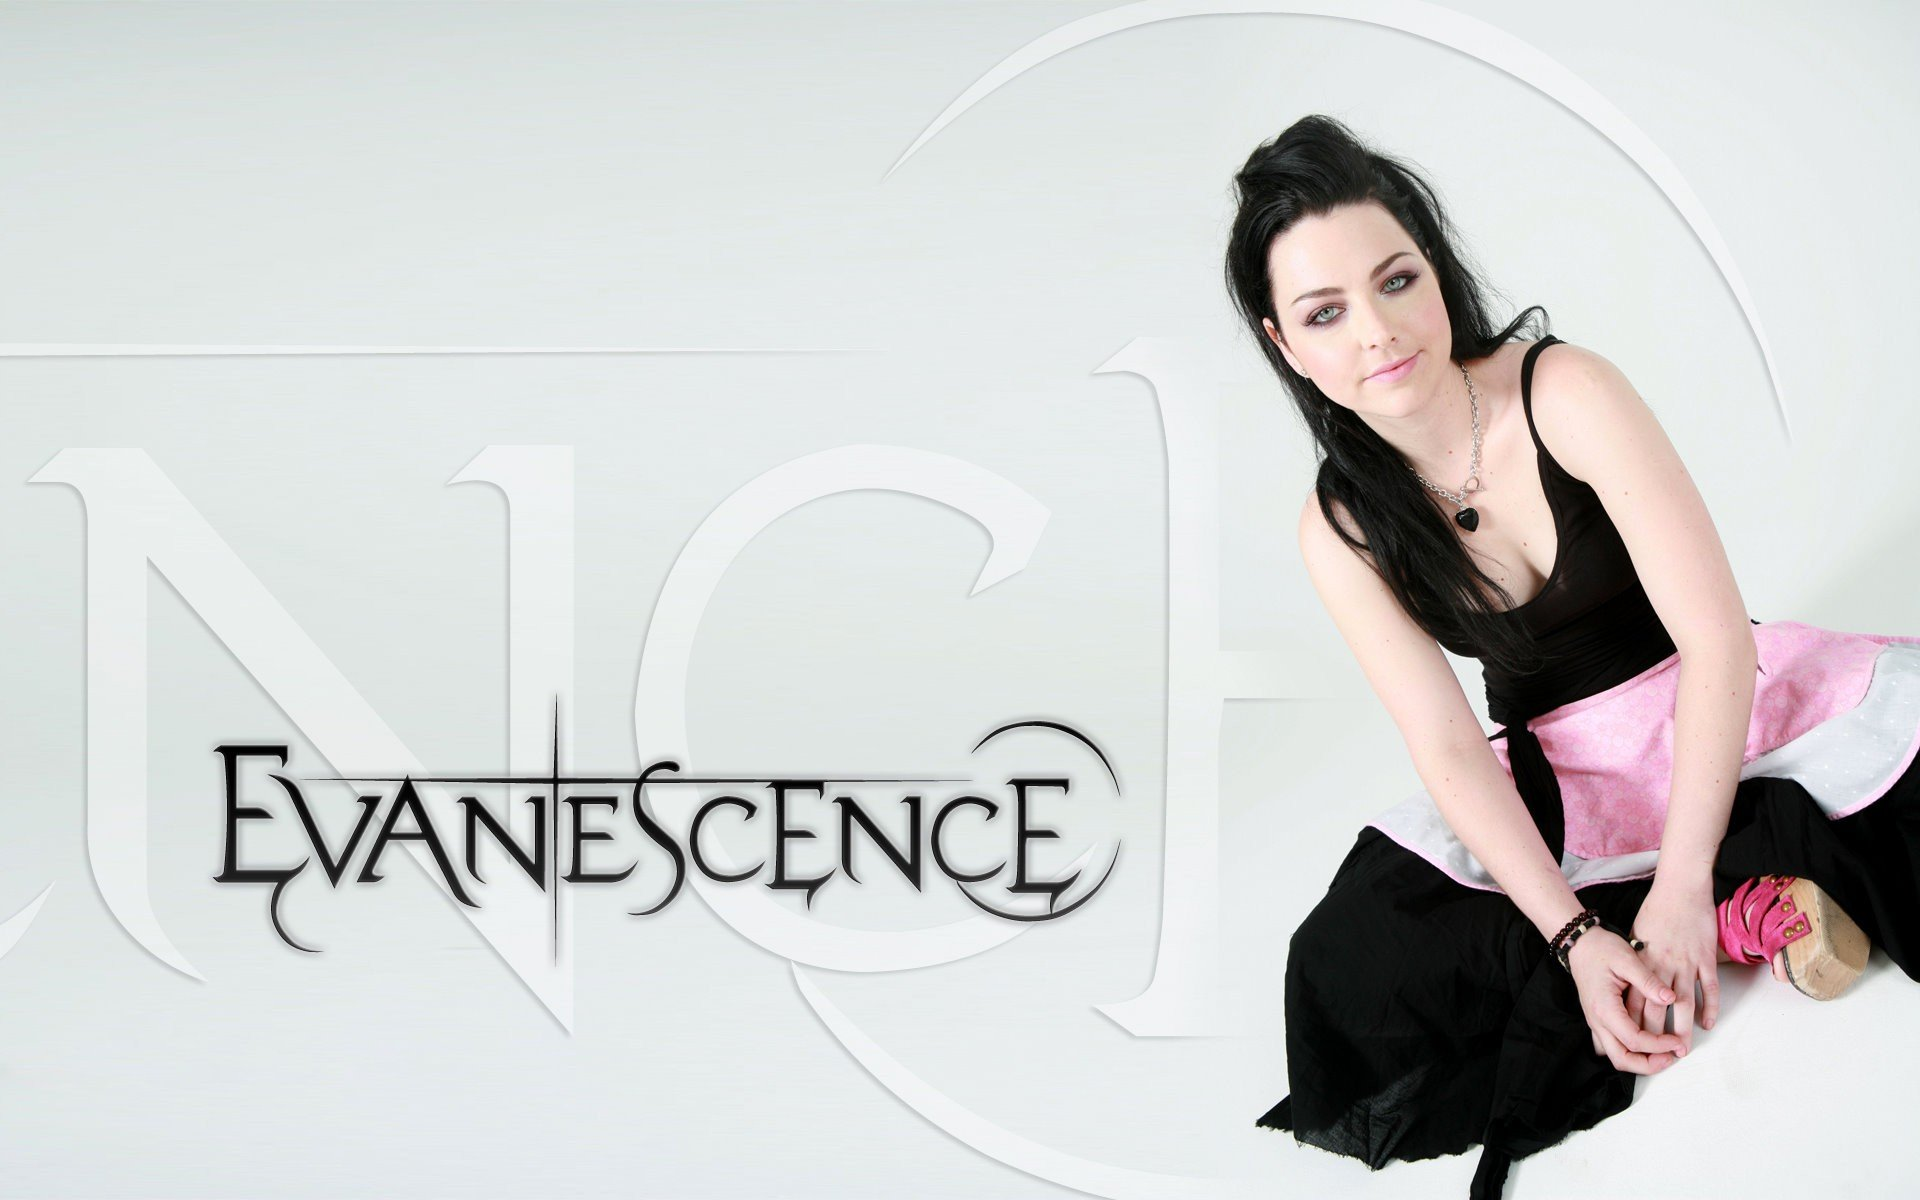 Amy Lee de Evanescence hd 1920x1200   imagenes   wallpapers gratis 1920x1200